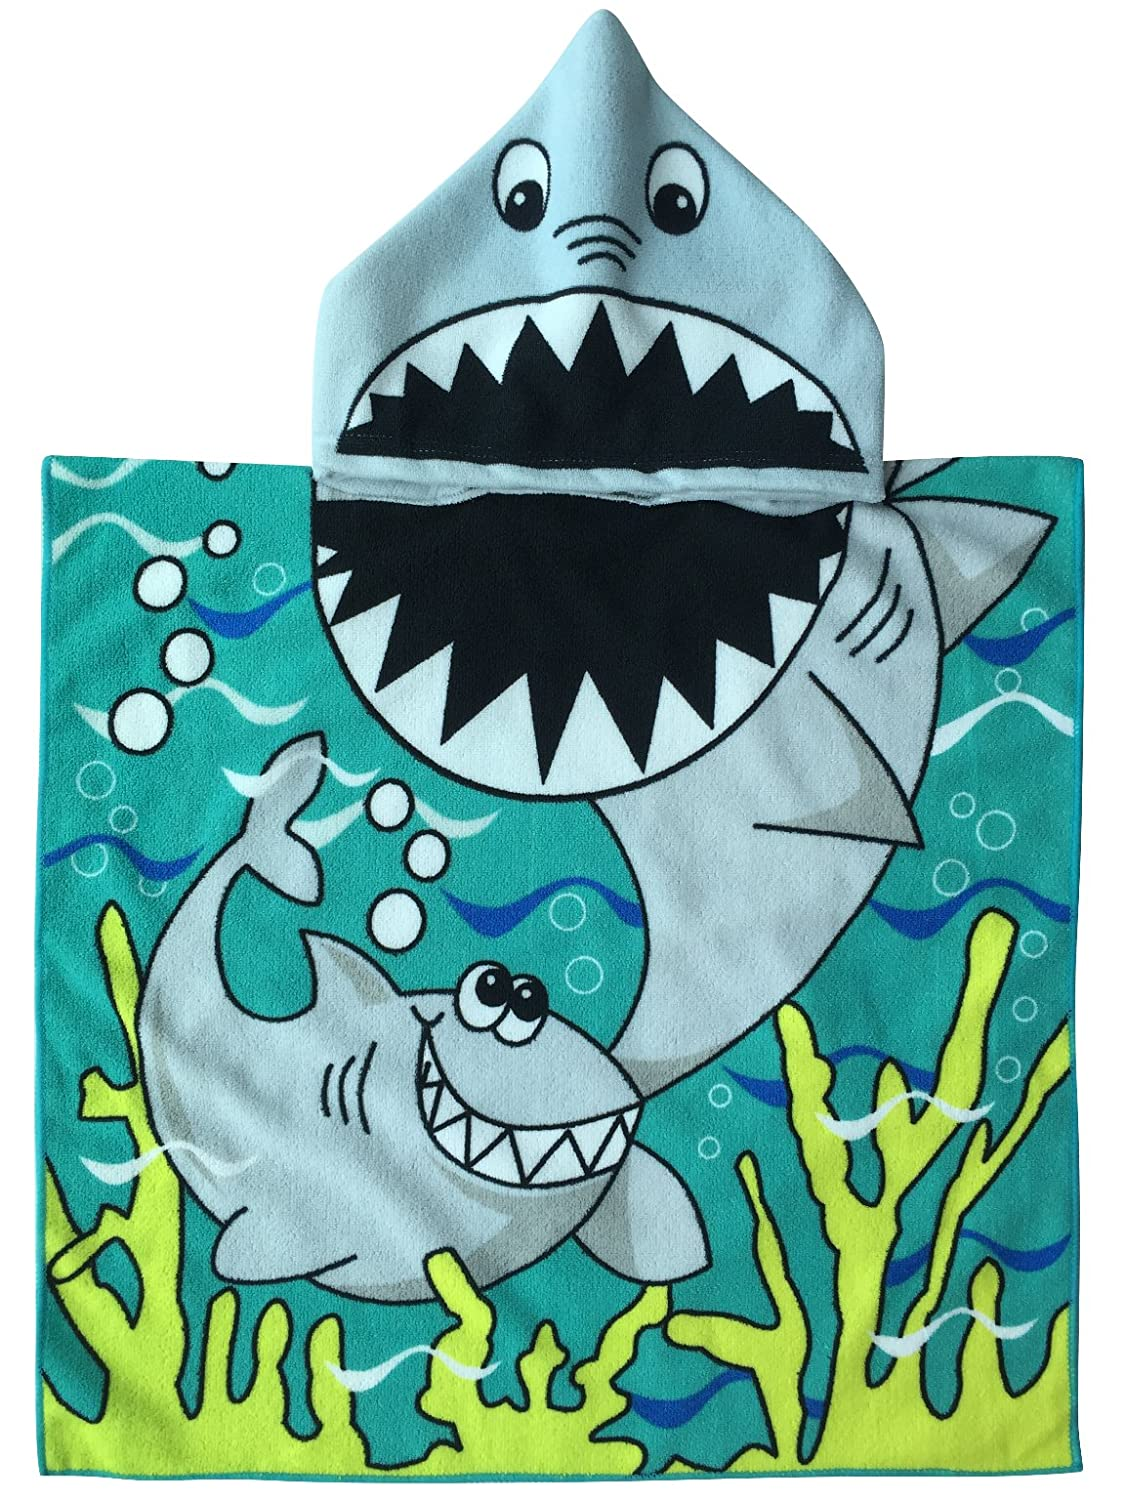 Amazon.com: Child Hooded Poncho Towel with Bright Shark for Bath Pool Time, Soft Quick Drying Microfiber: Home & Kitchen